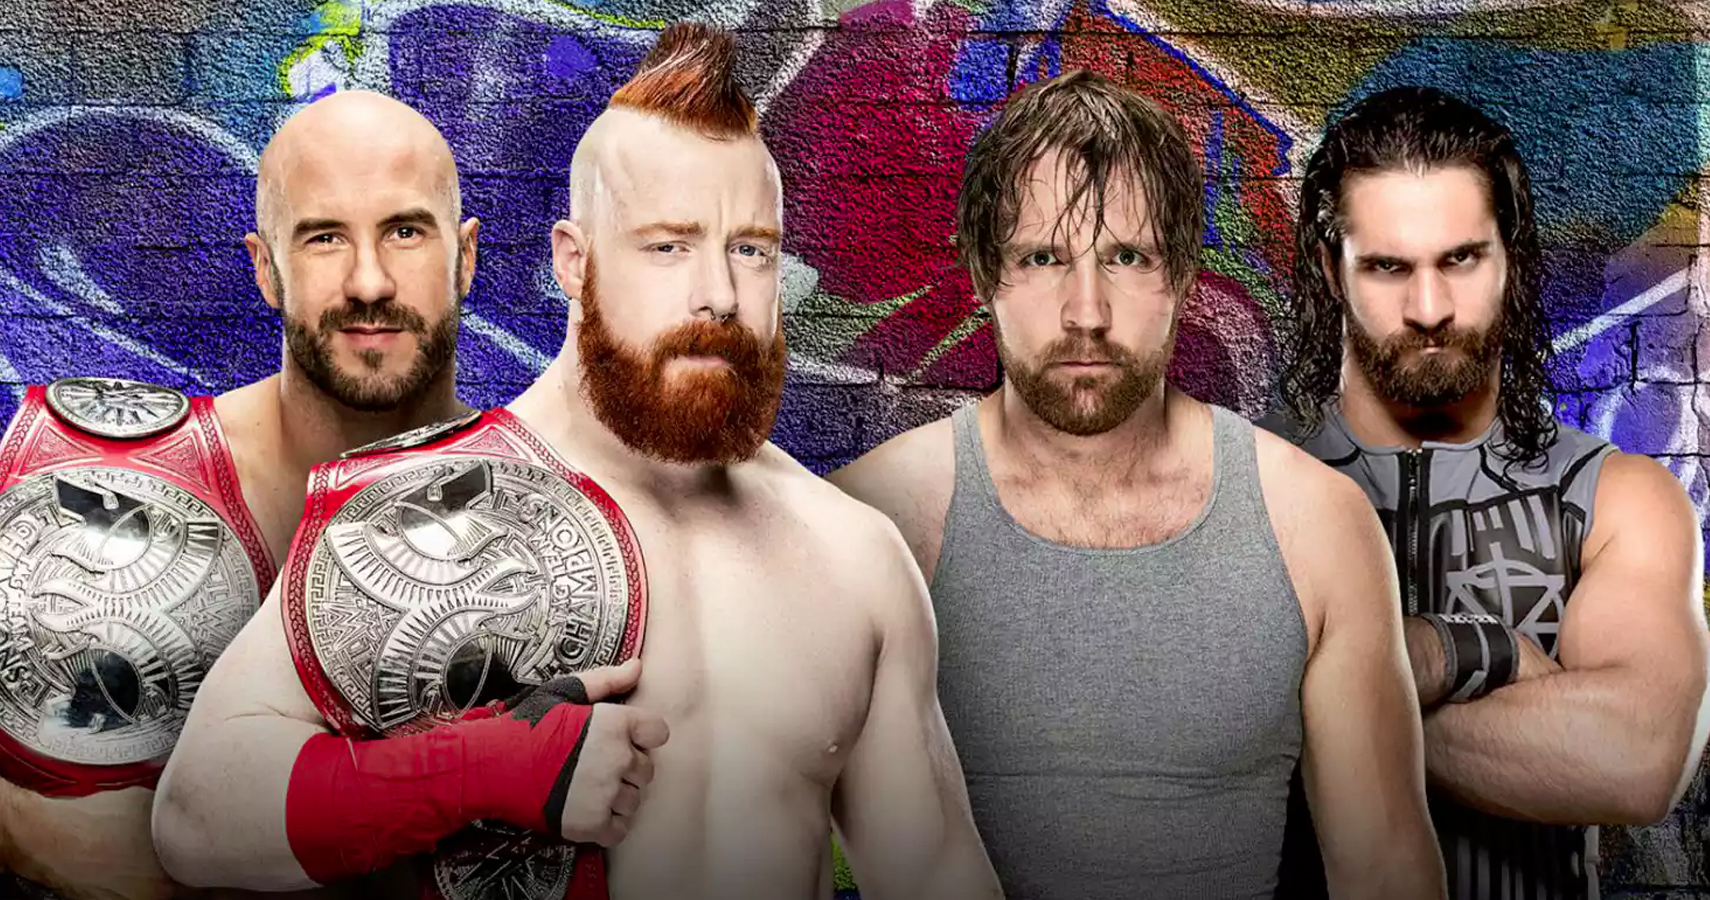 Image result for Sheamus and cesaro vs Rollins and Ambrose summerslam